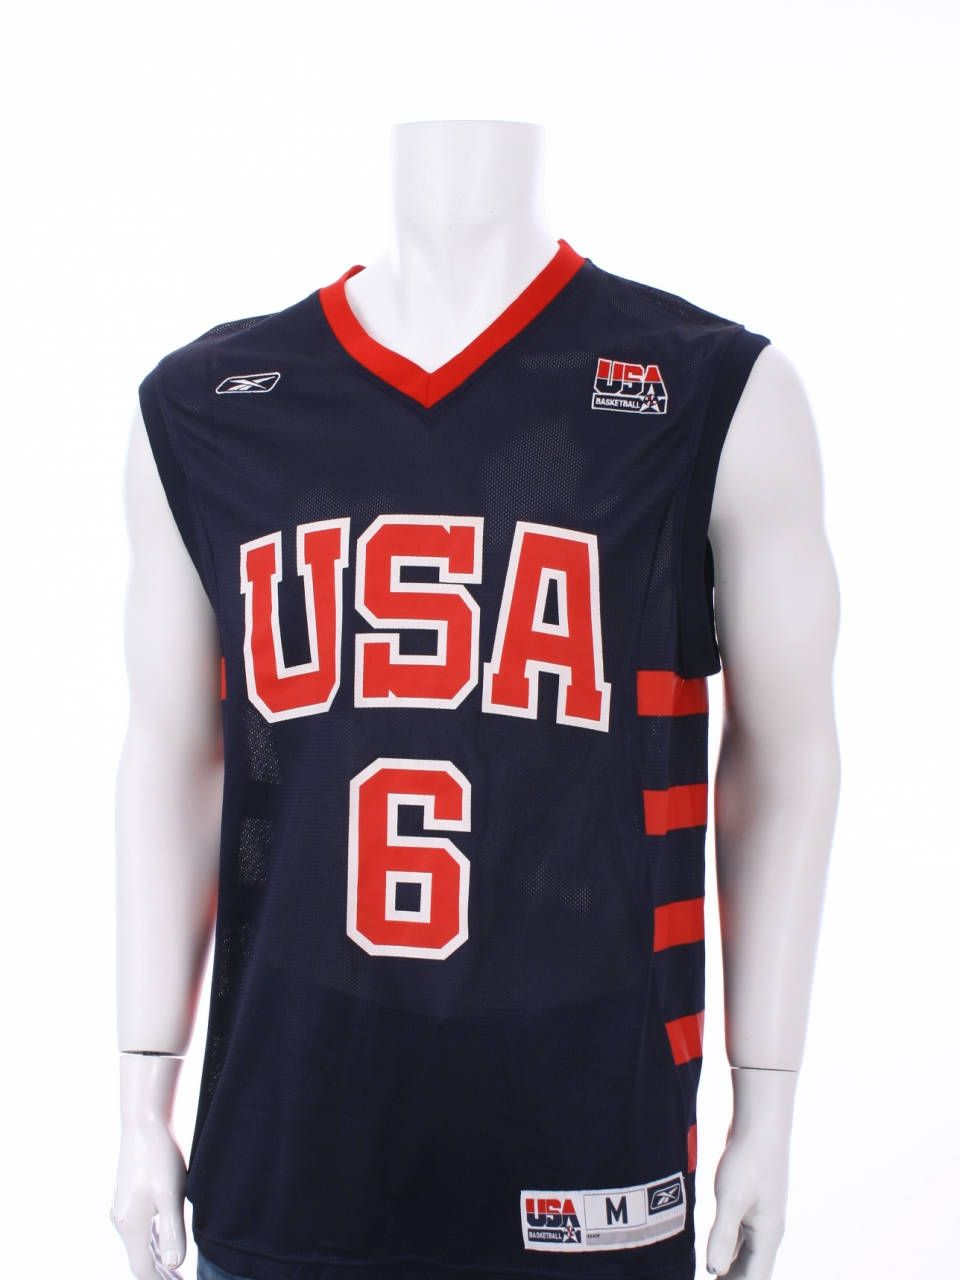 dfe3b0df5bd Vintage Tracy McGrady  6 USA Olympic Dream Team Basketball Reebok Jersey  Size M by VapeoVintage on Etsy